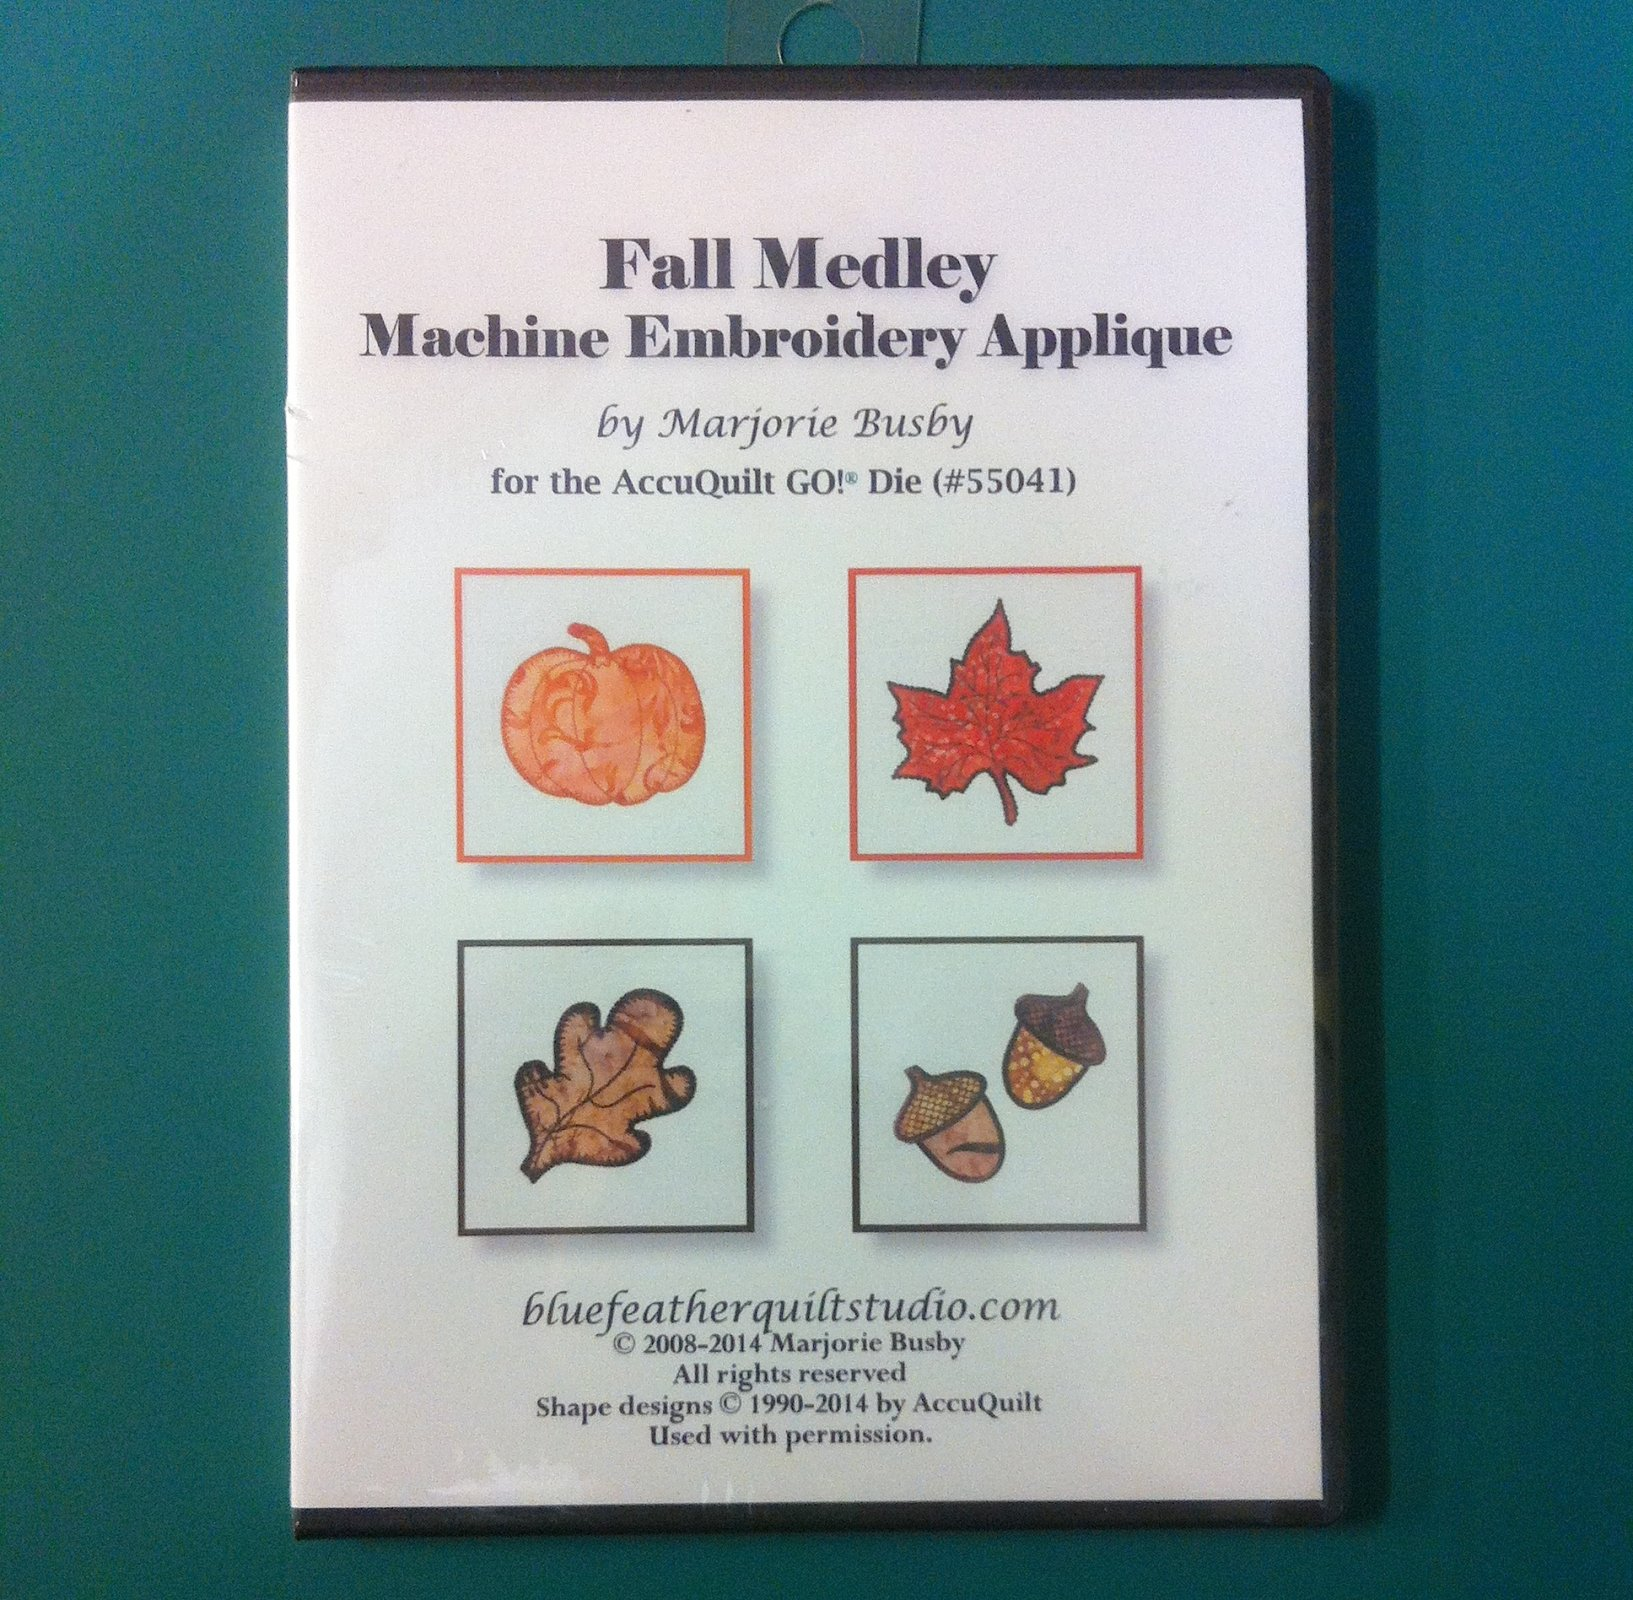 Fall Medley Machine Embroidery Applique